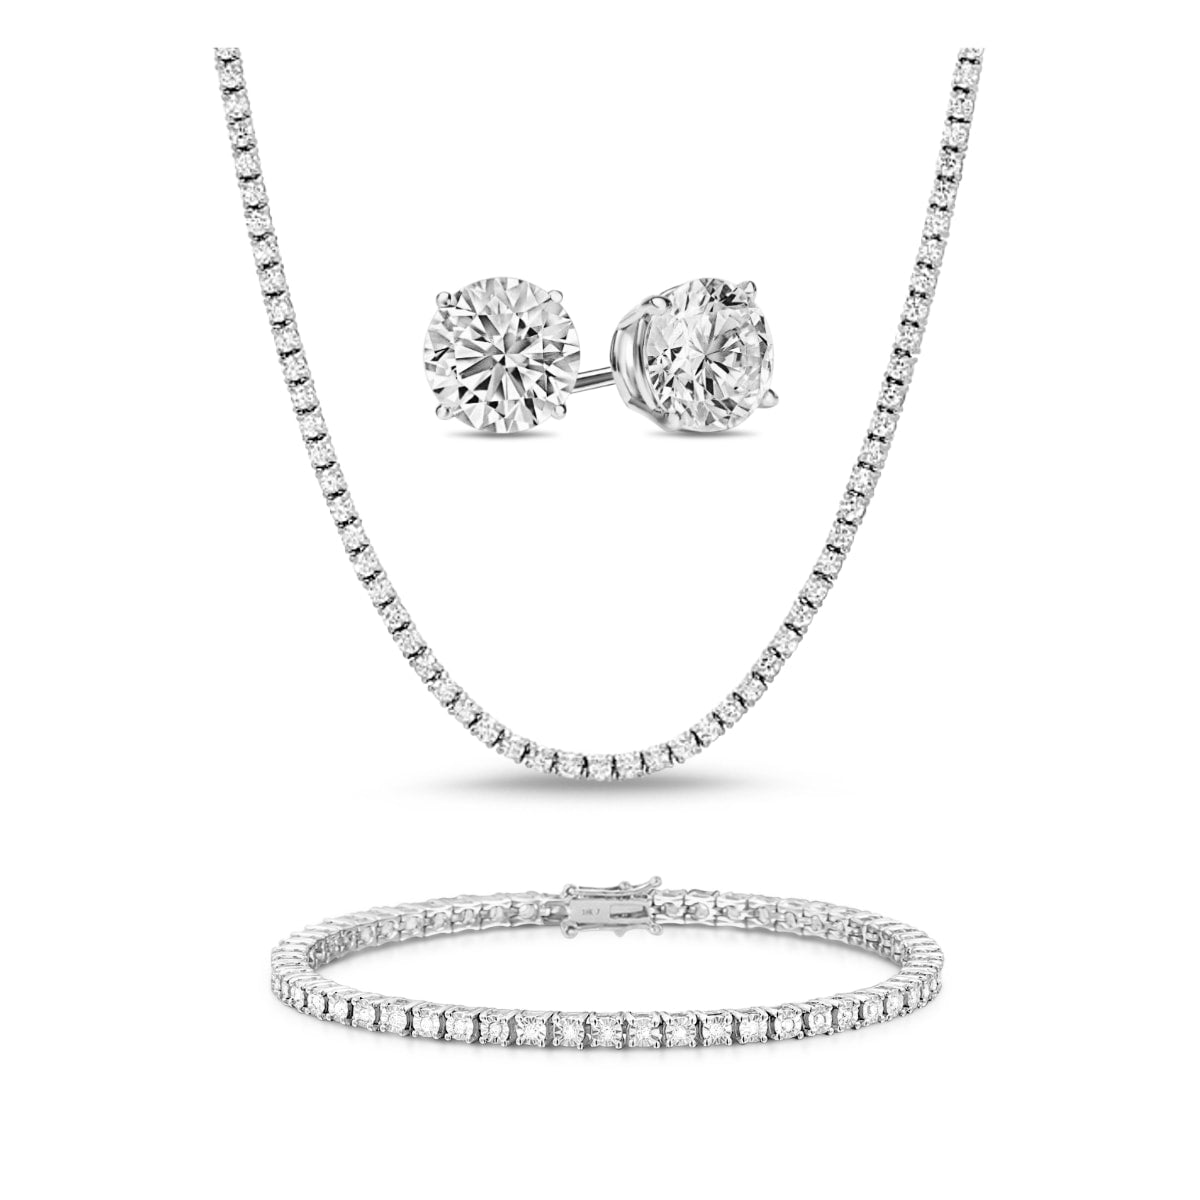 [PROMO SET] Monette 4 Prong Necklace Bracelet Earrings Diamond Set in 18k White Gold Vermeil